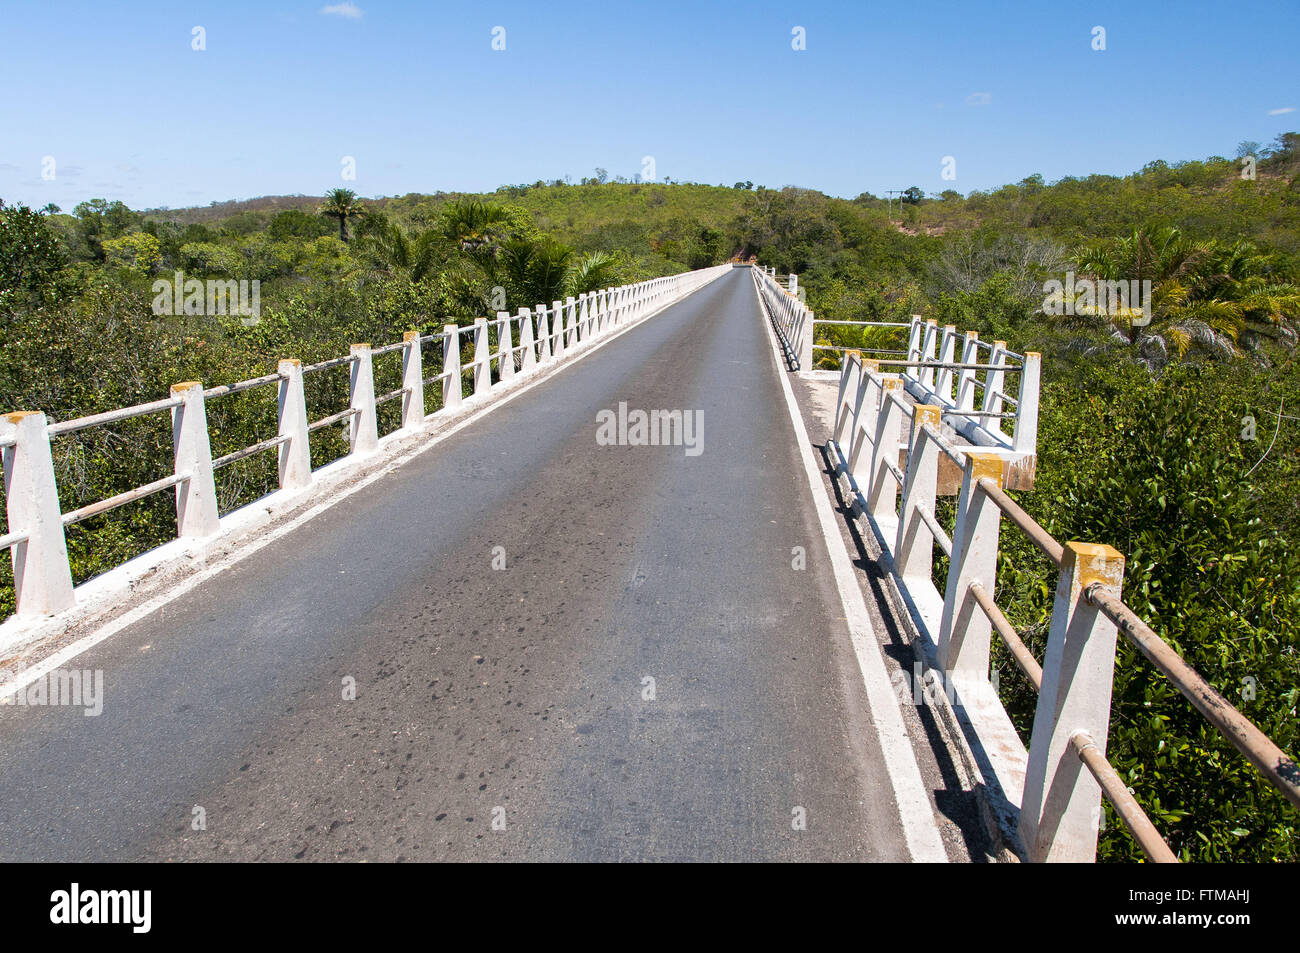 Bridge over the River Roncador with gazebo in BA-142 highway - Stock Image